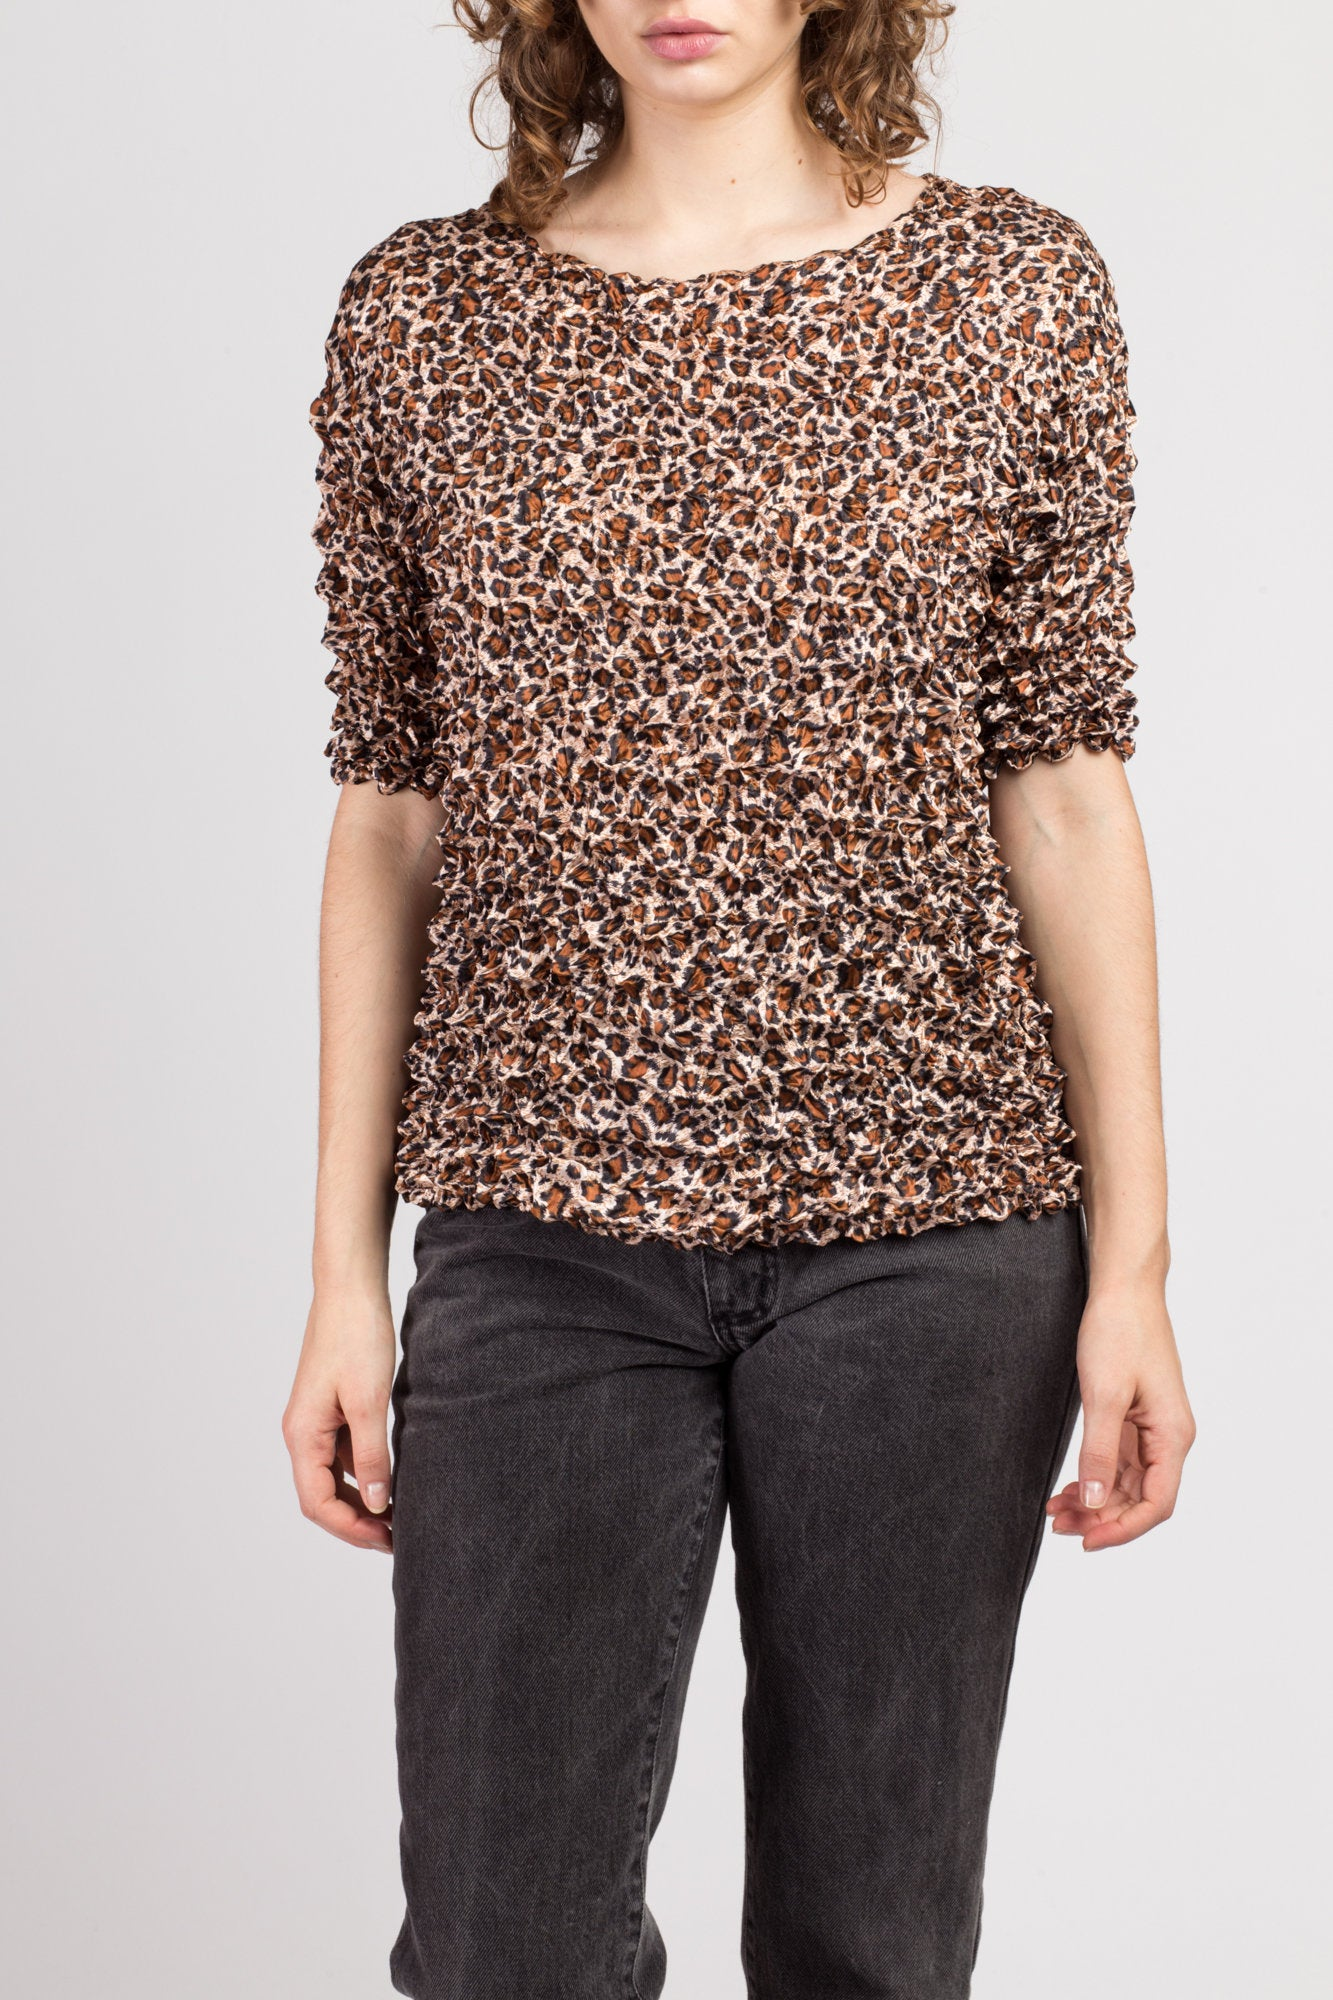 90s Leopard Print Popcorn Shirt - Large to XL